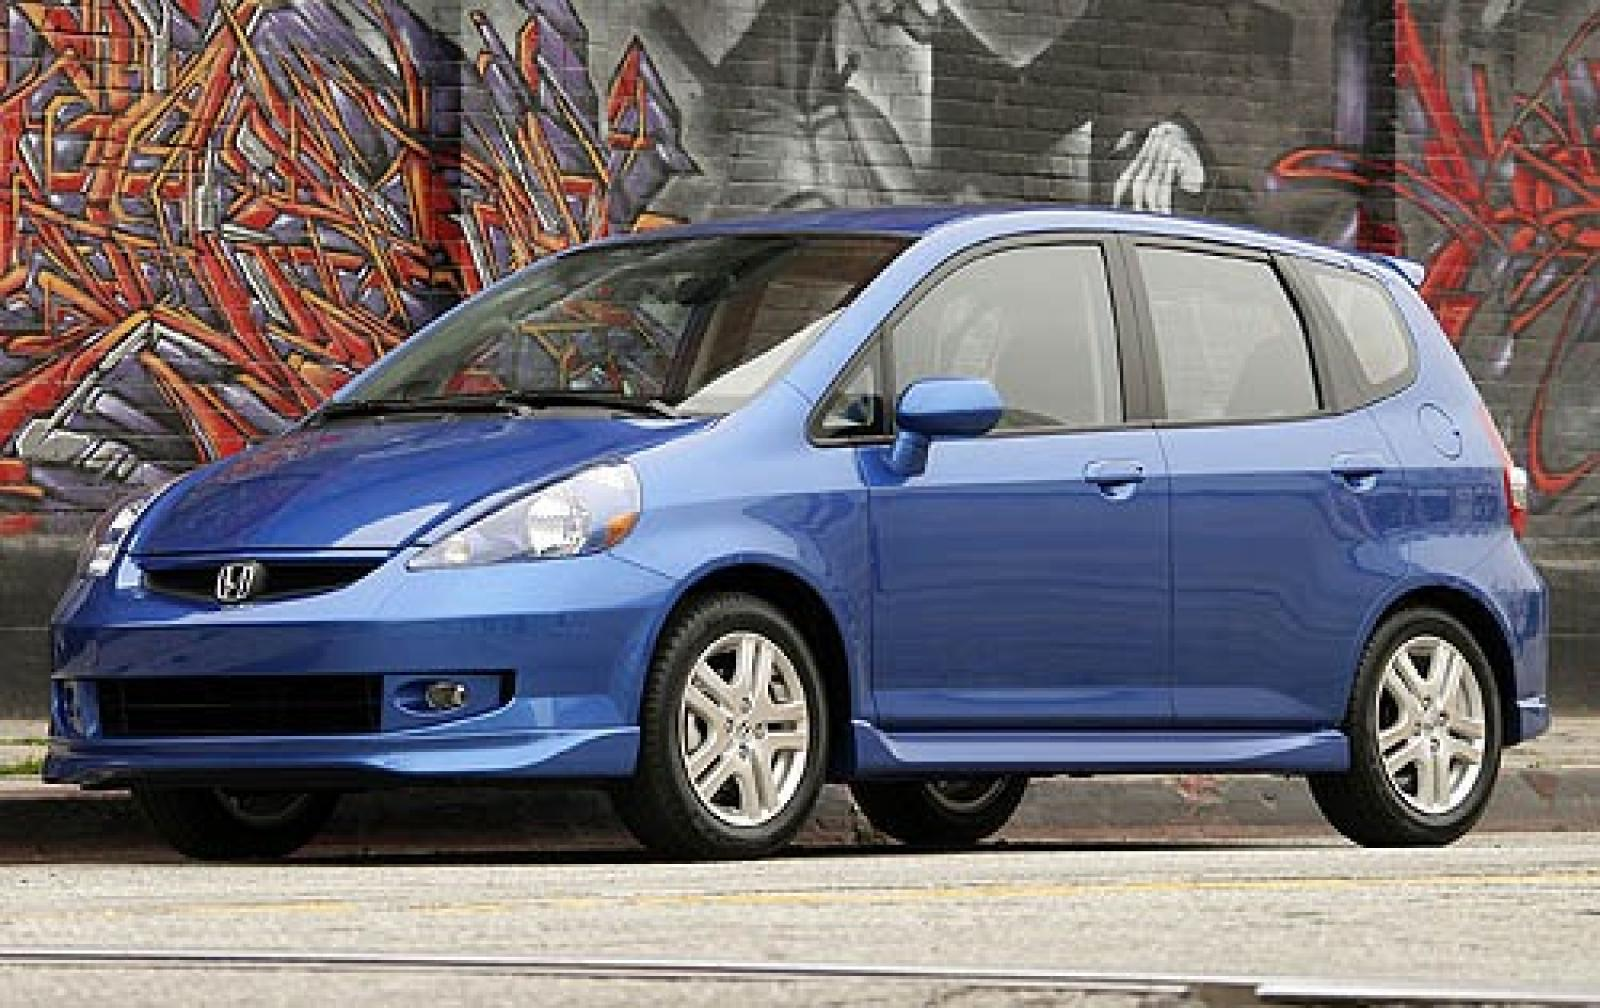 2008 honda fit information and photos zombiedrive. Black Bedroom Furniture Sets. Home Design Ideas